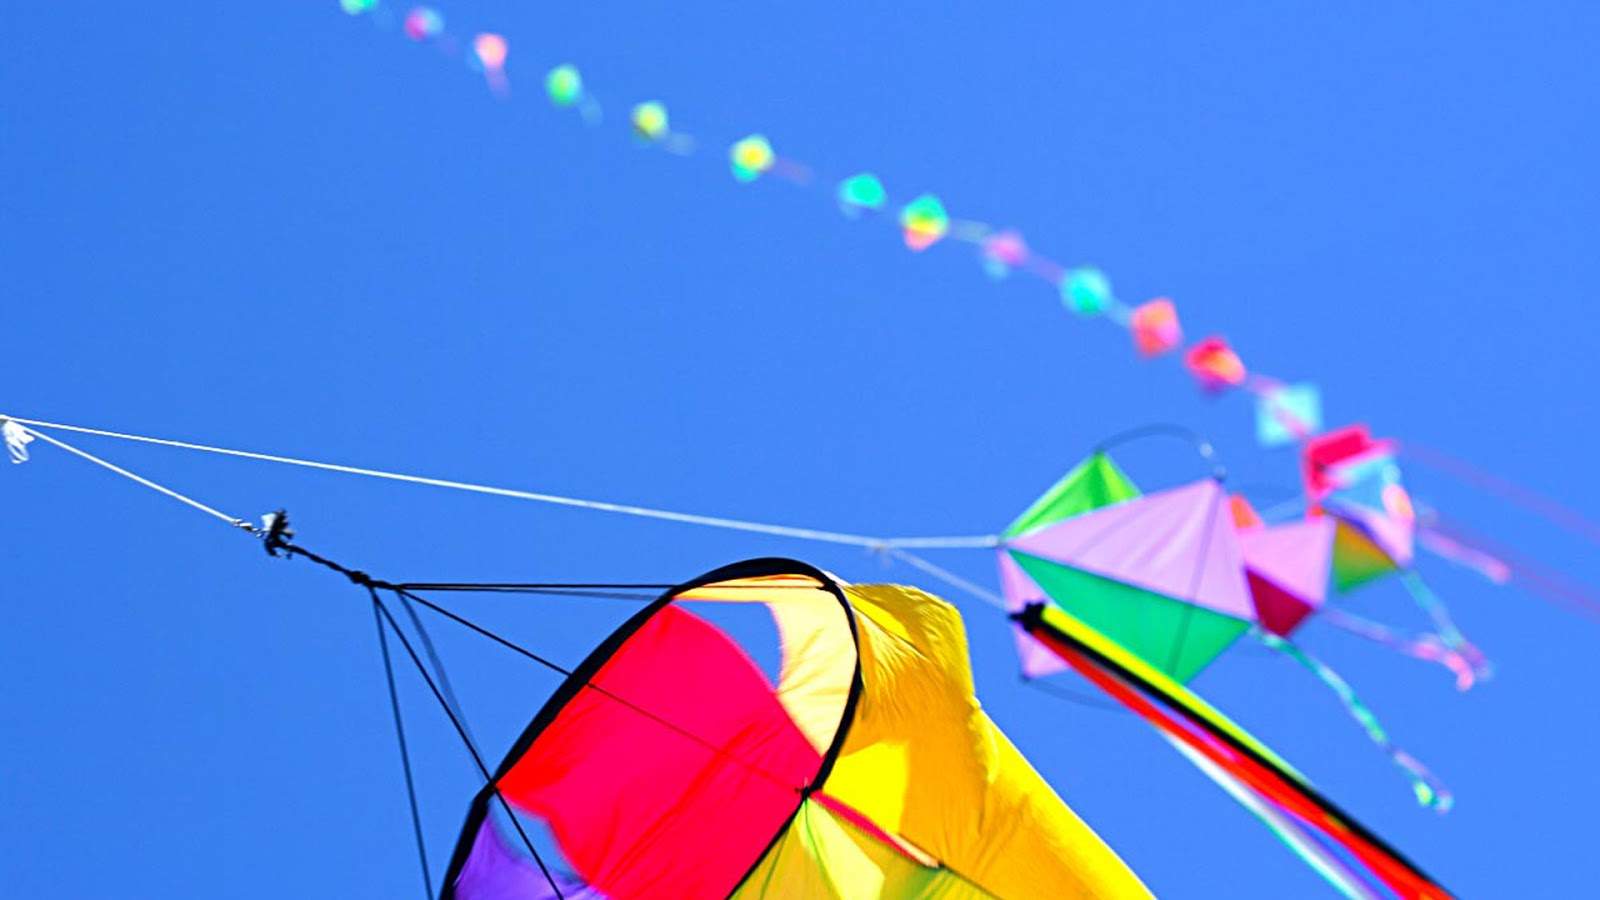 Kites In The Sky | Clipart Panda - Free Clipart Images